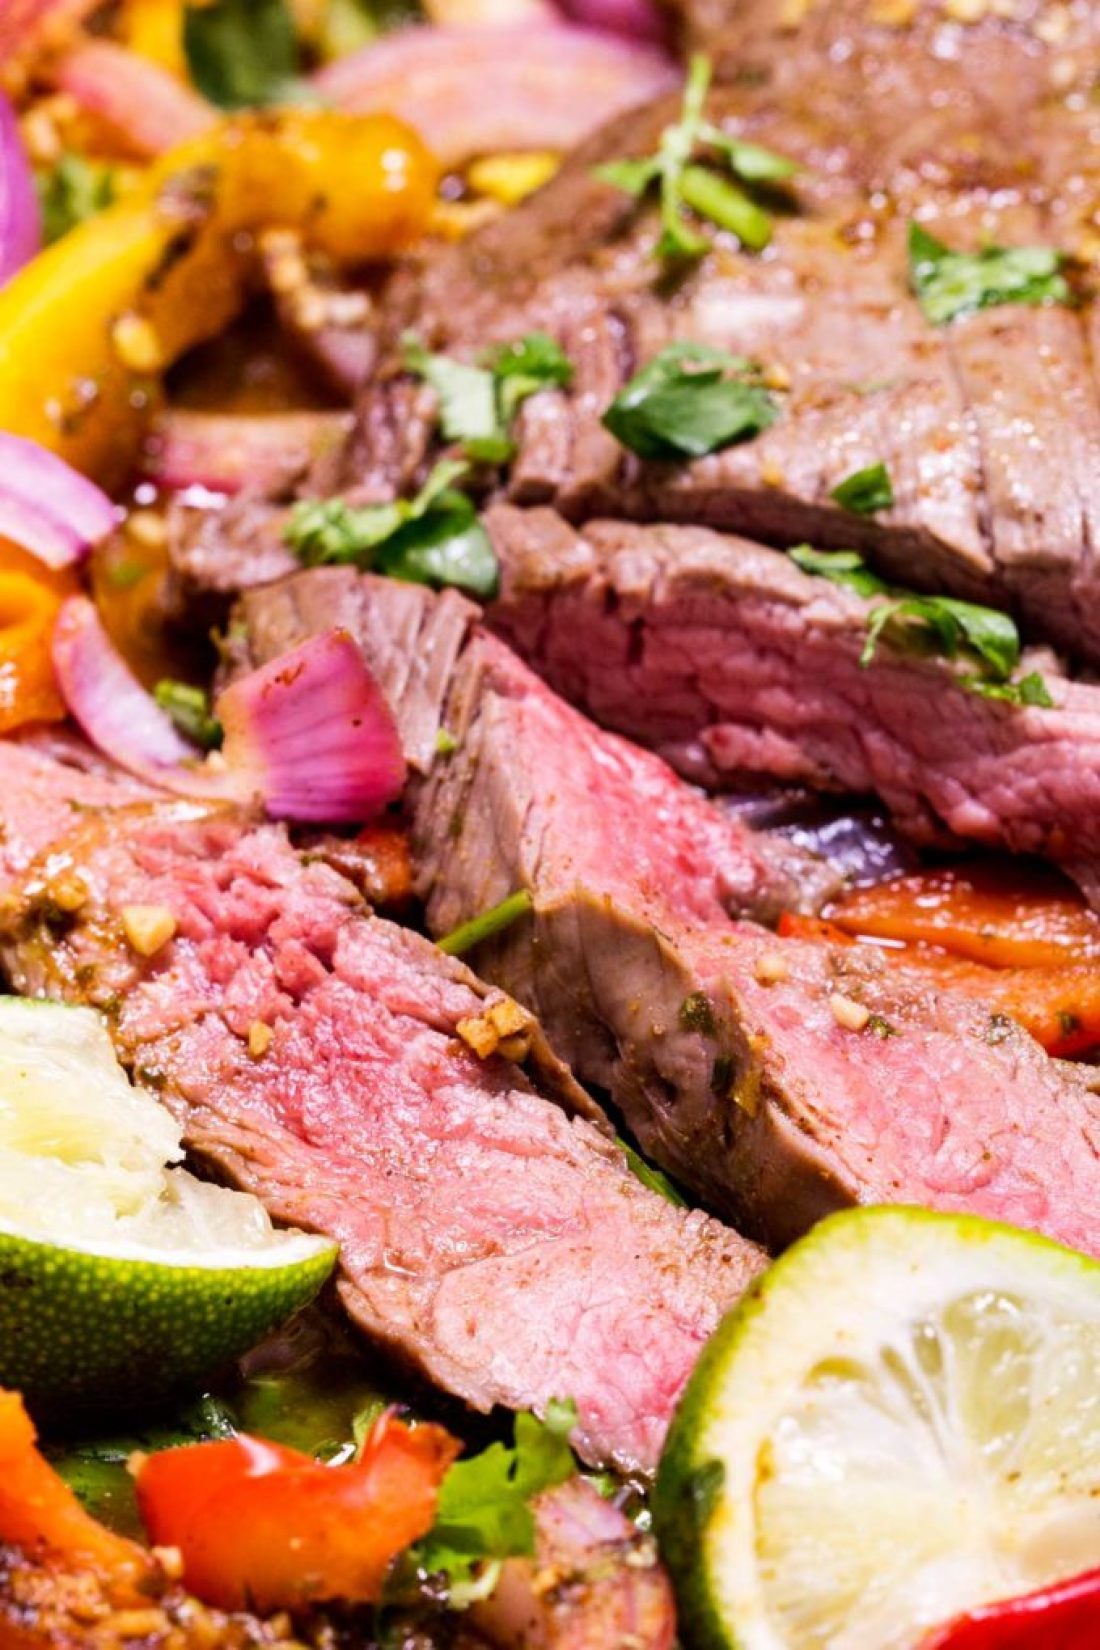 Tender flavorful beef and fajita fixings, this is a one sheet pan meal that is killer!